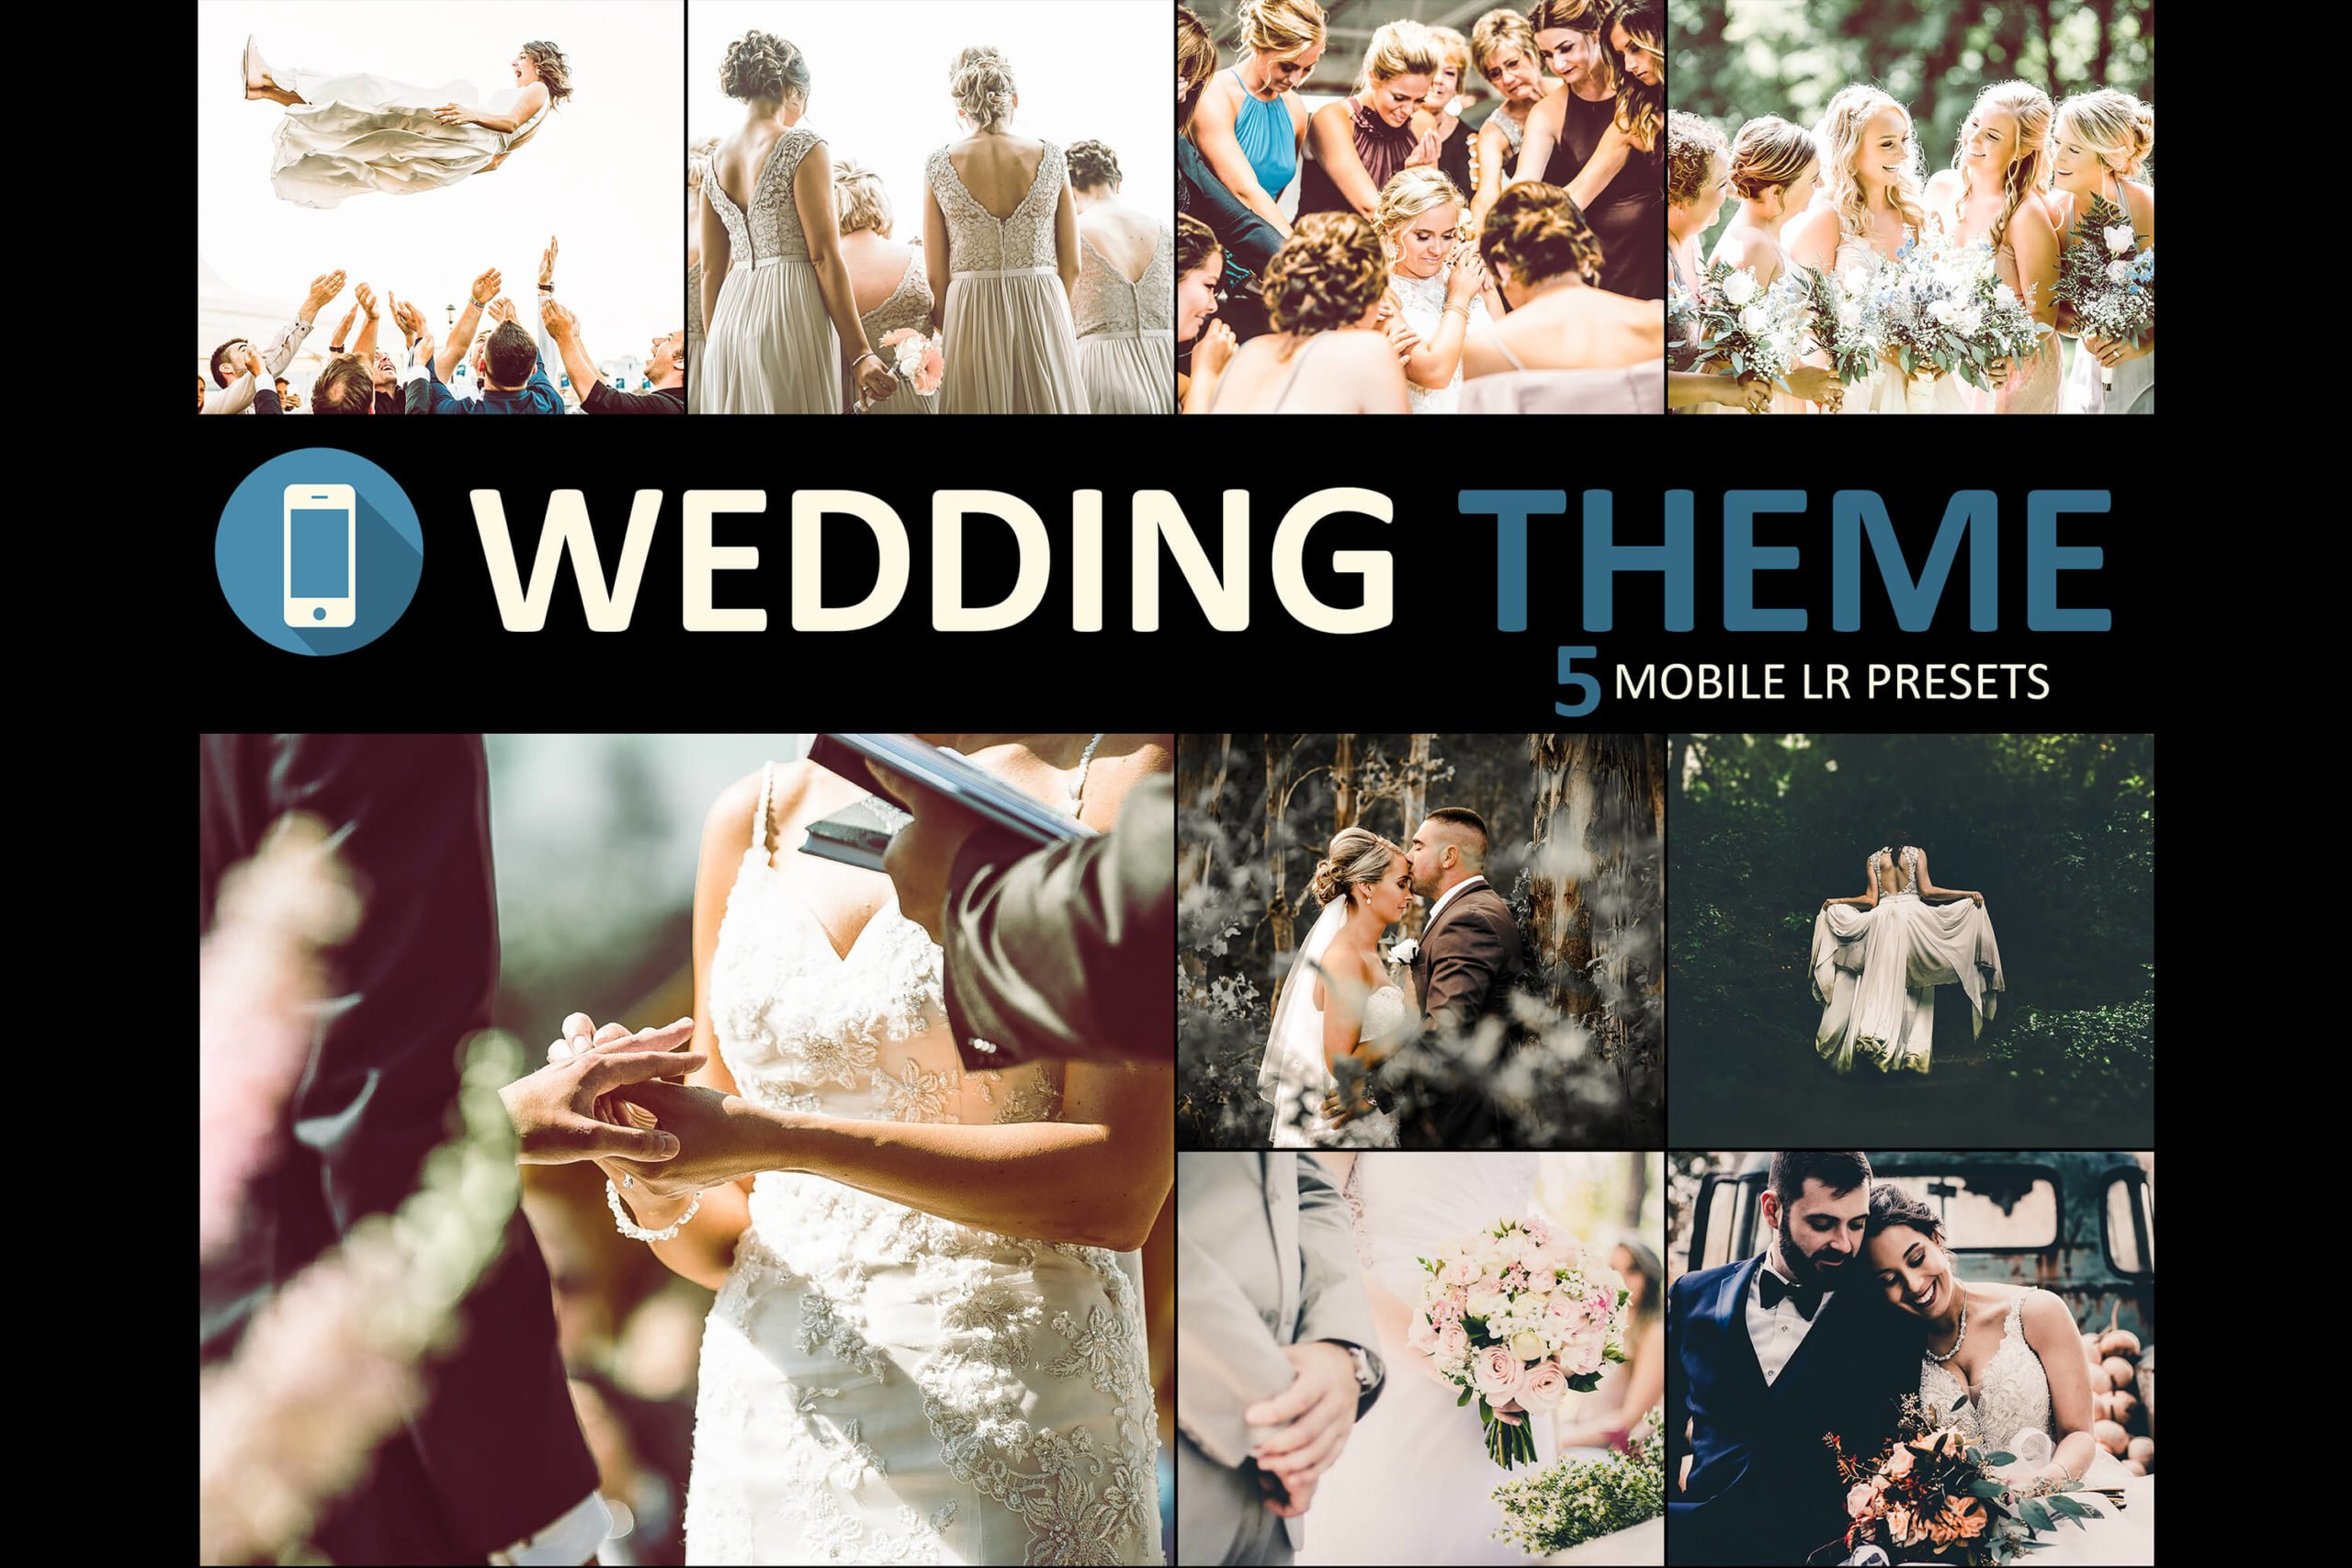 Neo Wedding Theme Mobile Lightroom Presets